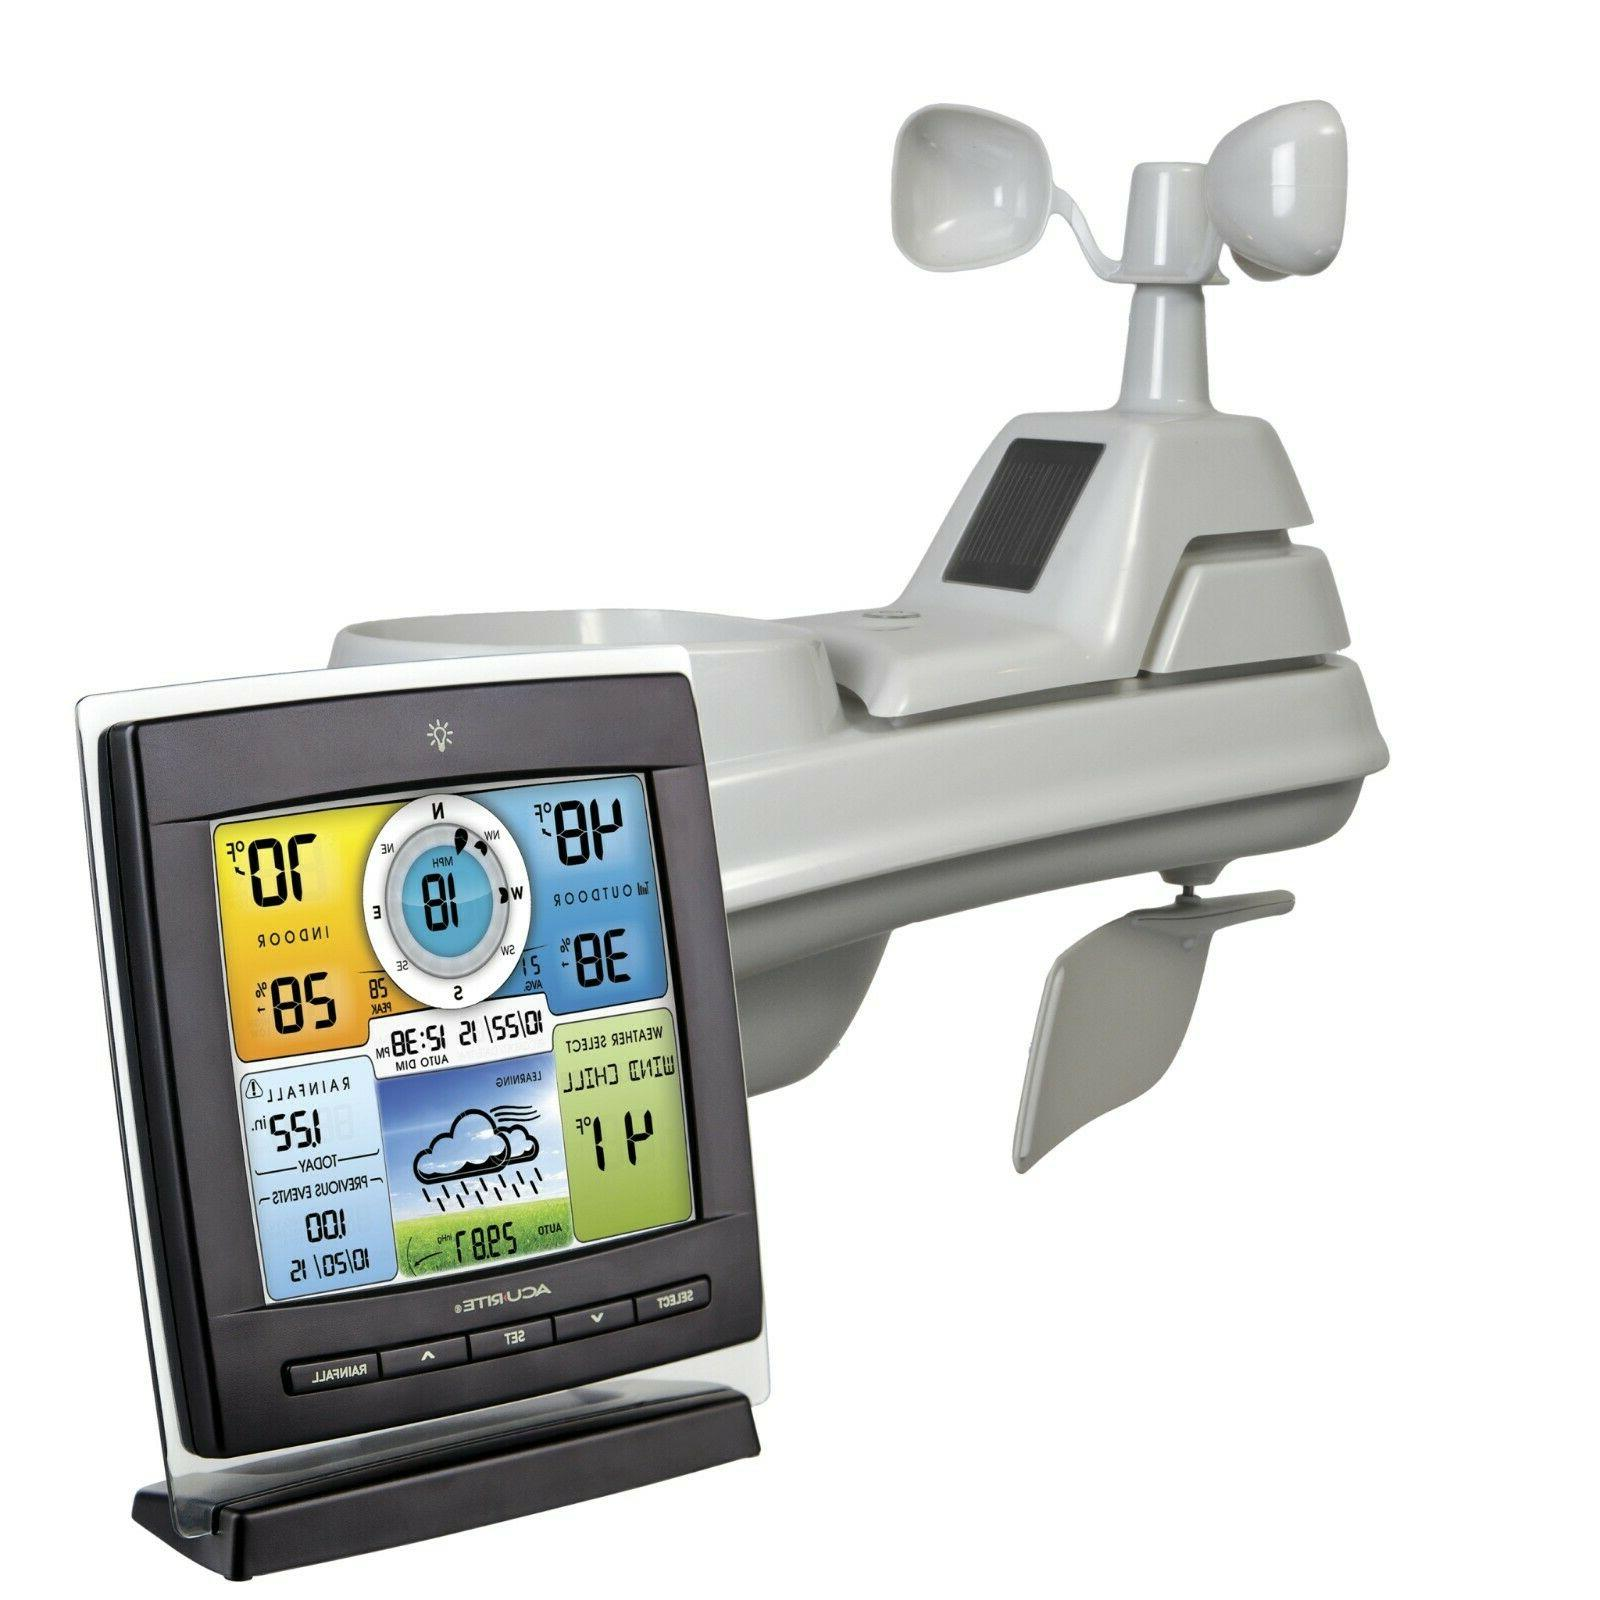 5-in-1 Wireless Weather Station w/ Color